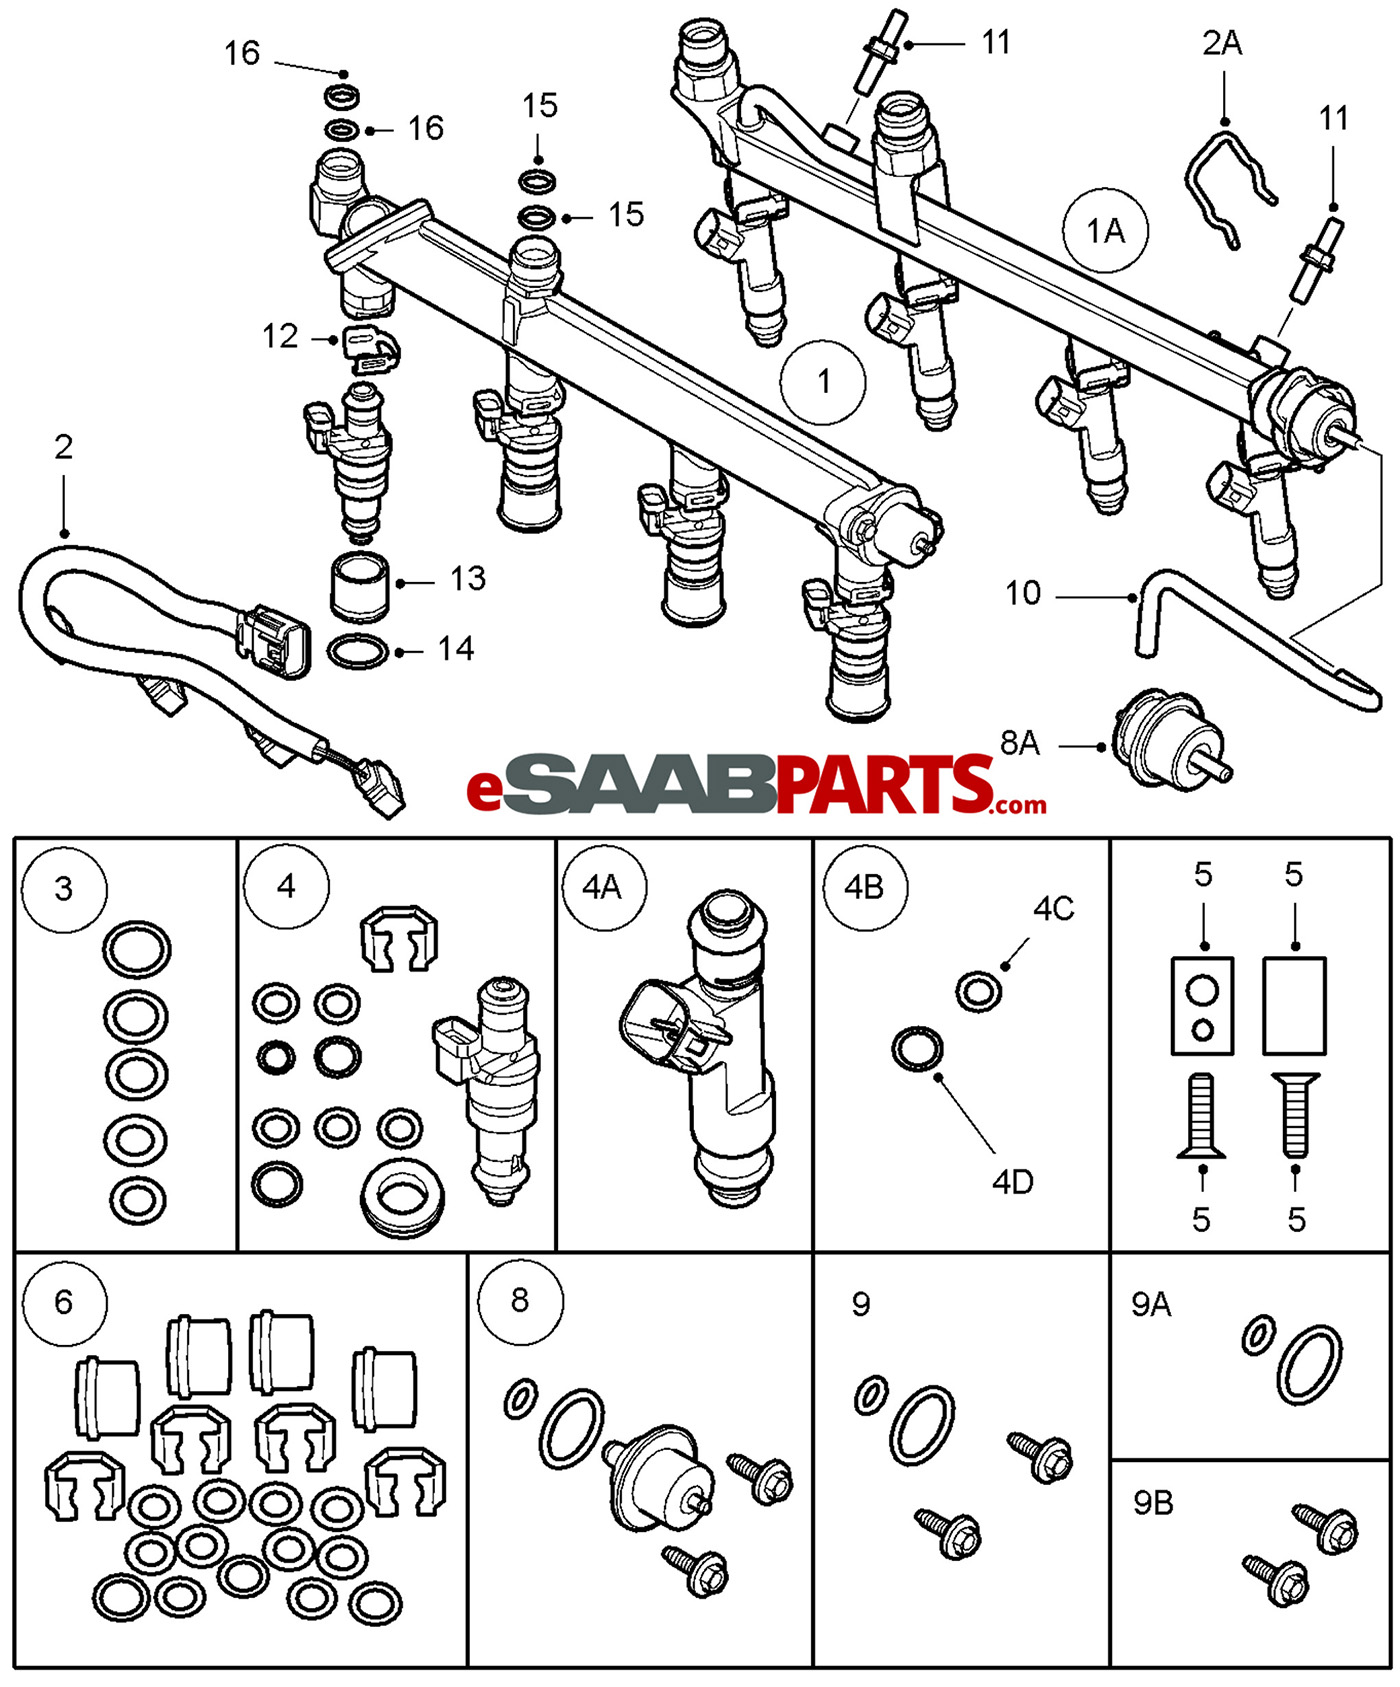 saab fuel pressure diagram [55559397] saab fuel injector 2.0t (2007-2011, b207r ... mercury fuel pressure diagram